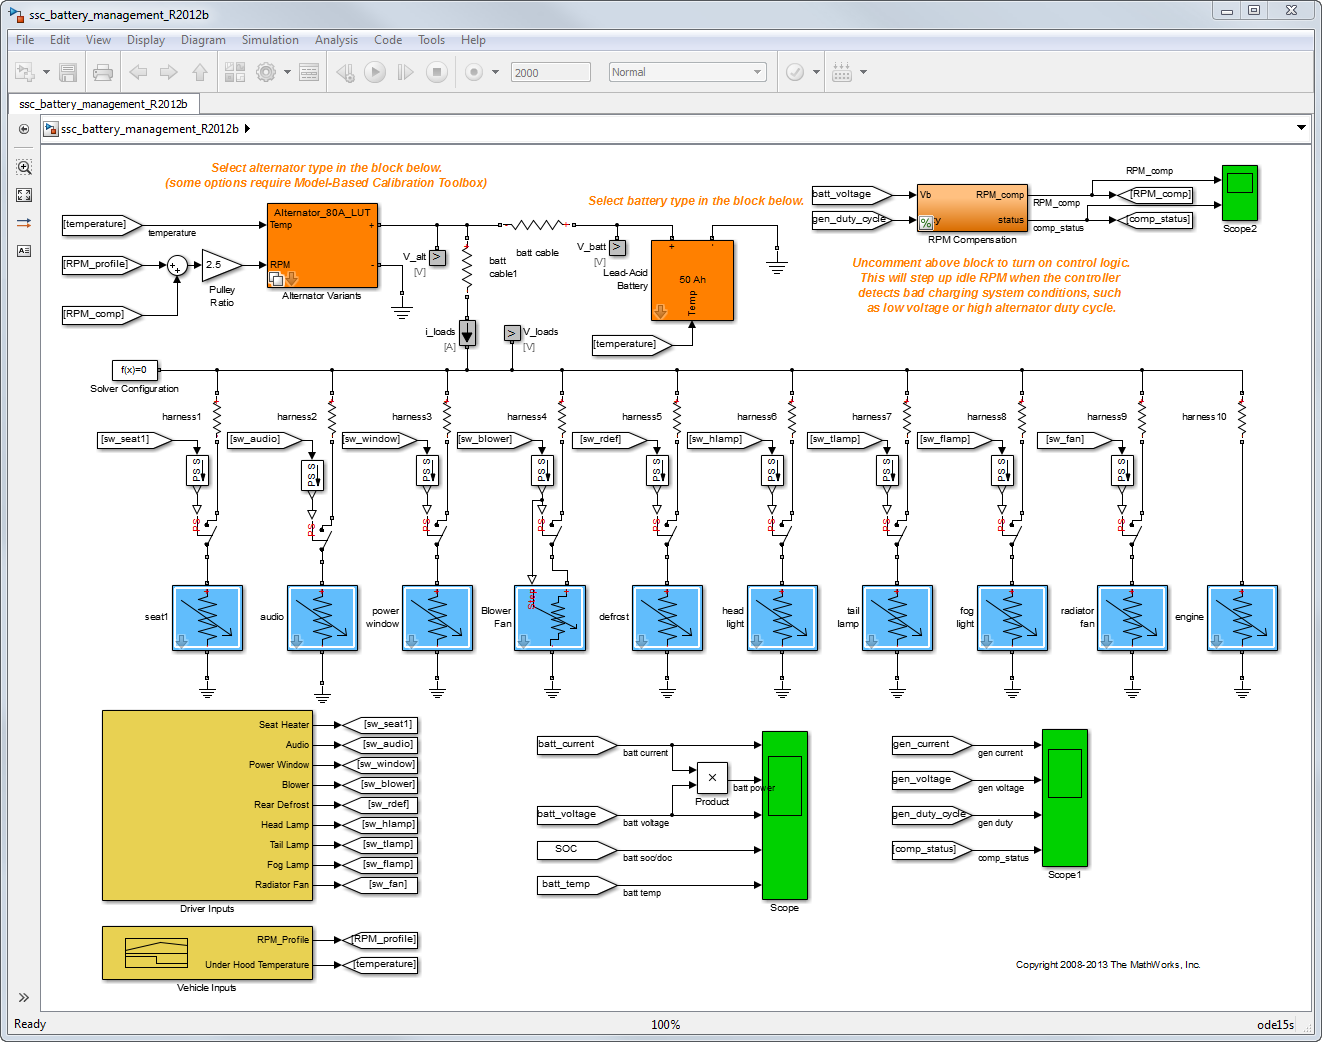 Lut Mlc Wiring Diagram 22 Images Diagrams Electrical Simulator Automotive System Simulation And Control File Screenshot At